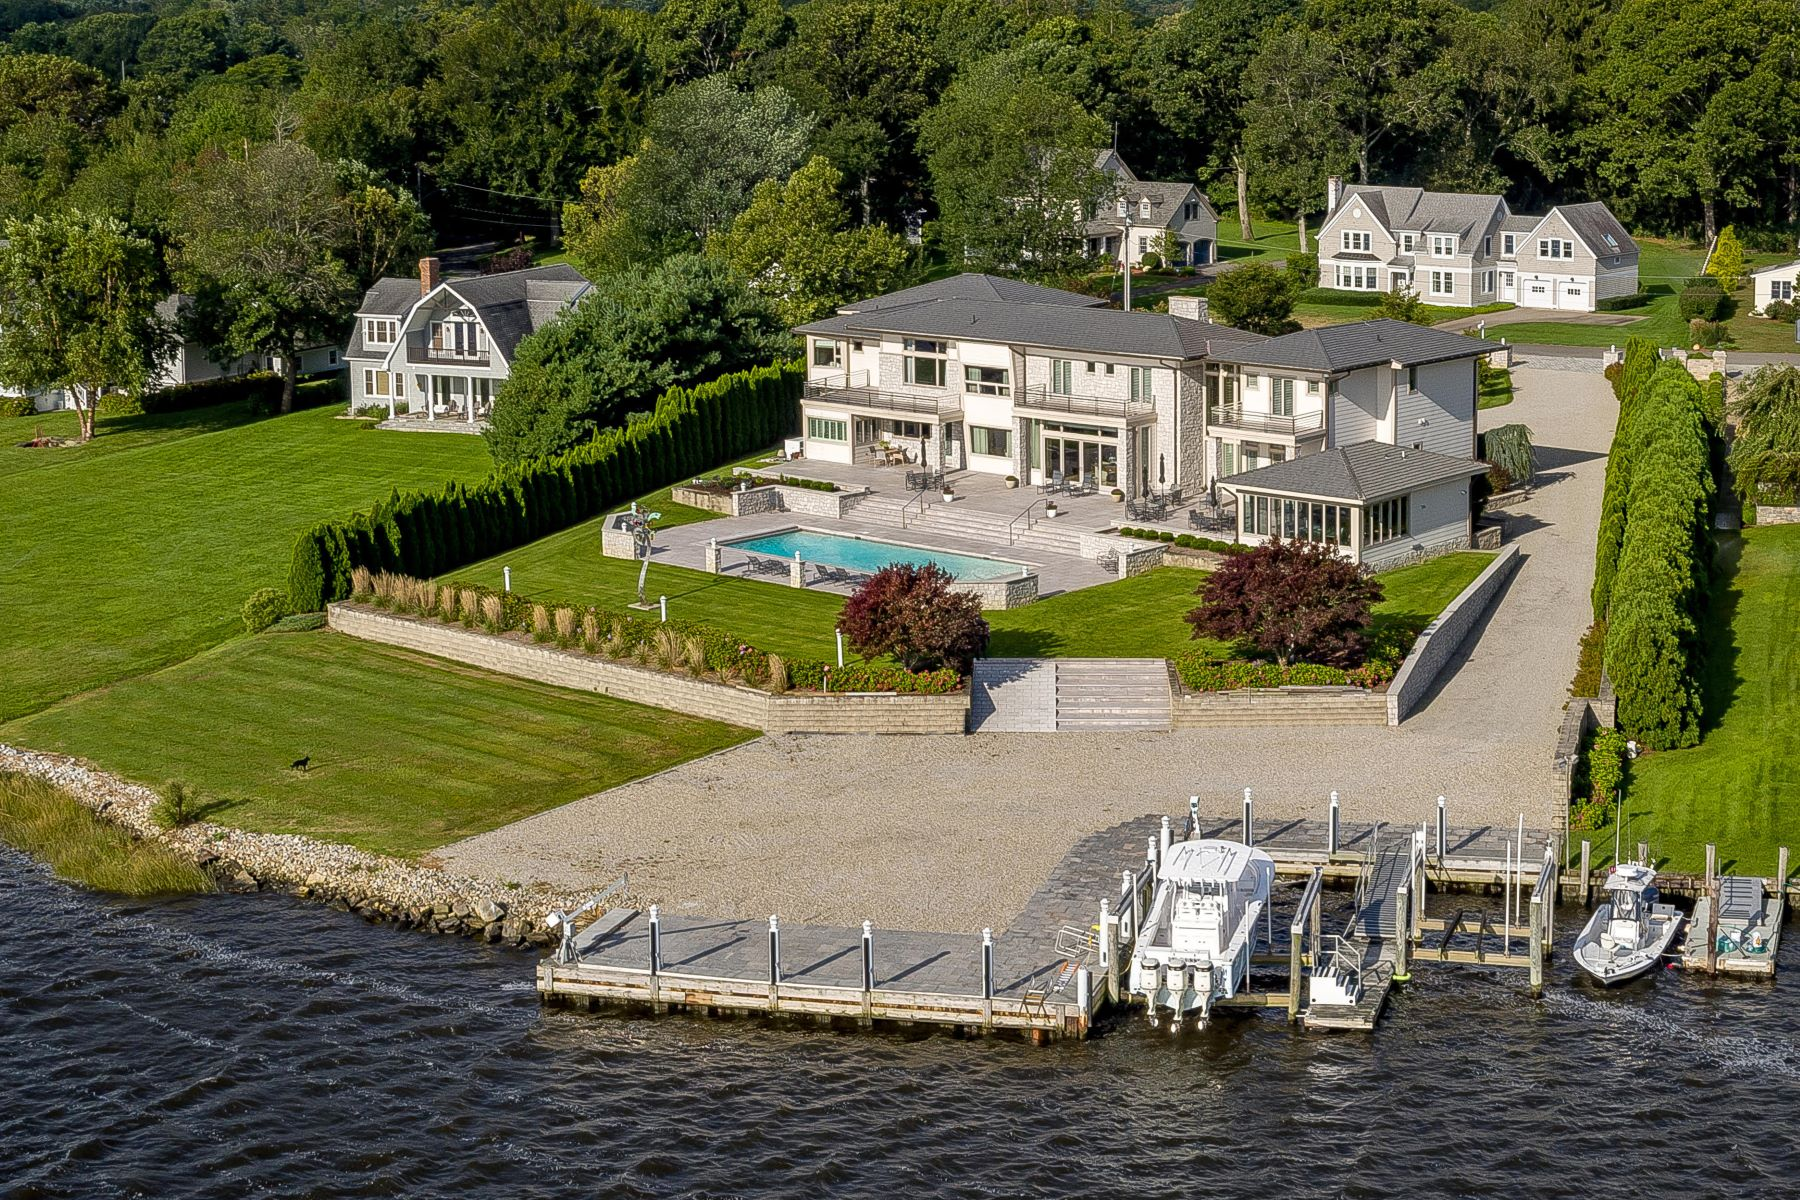 Property for Sale at Unique Waterfront Home 20 Saltus Drive, Old Saybrook, Connecticut 06475 United States